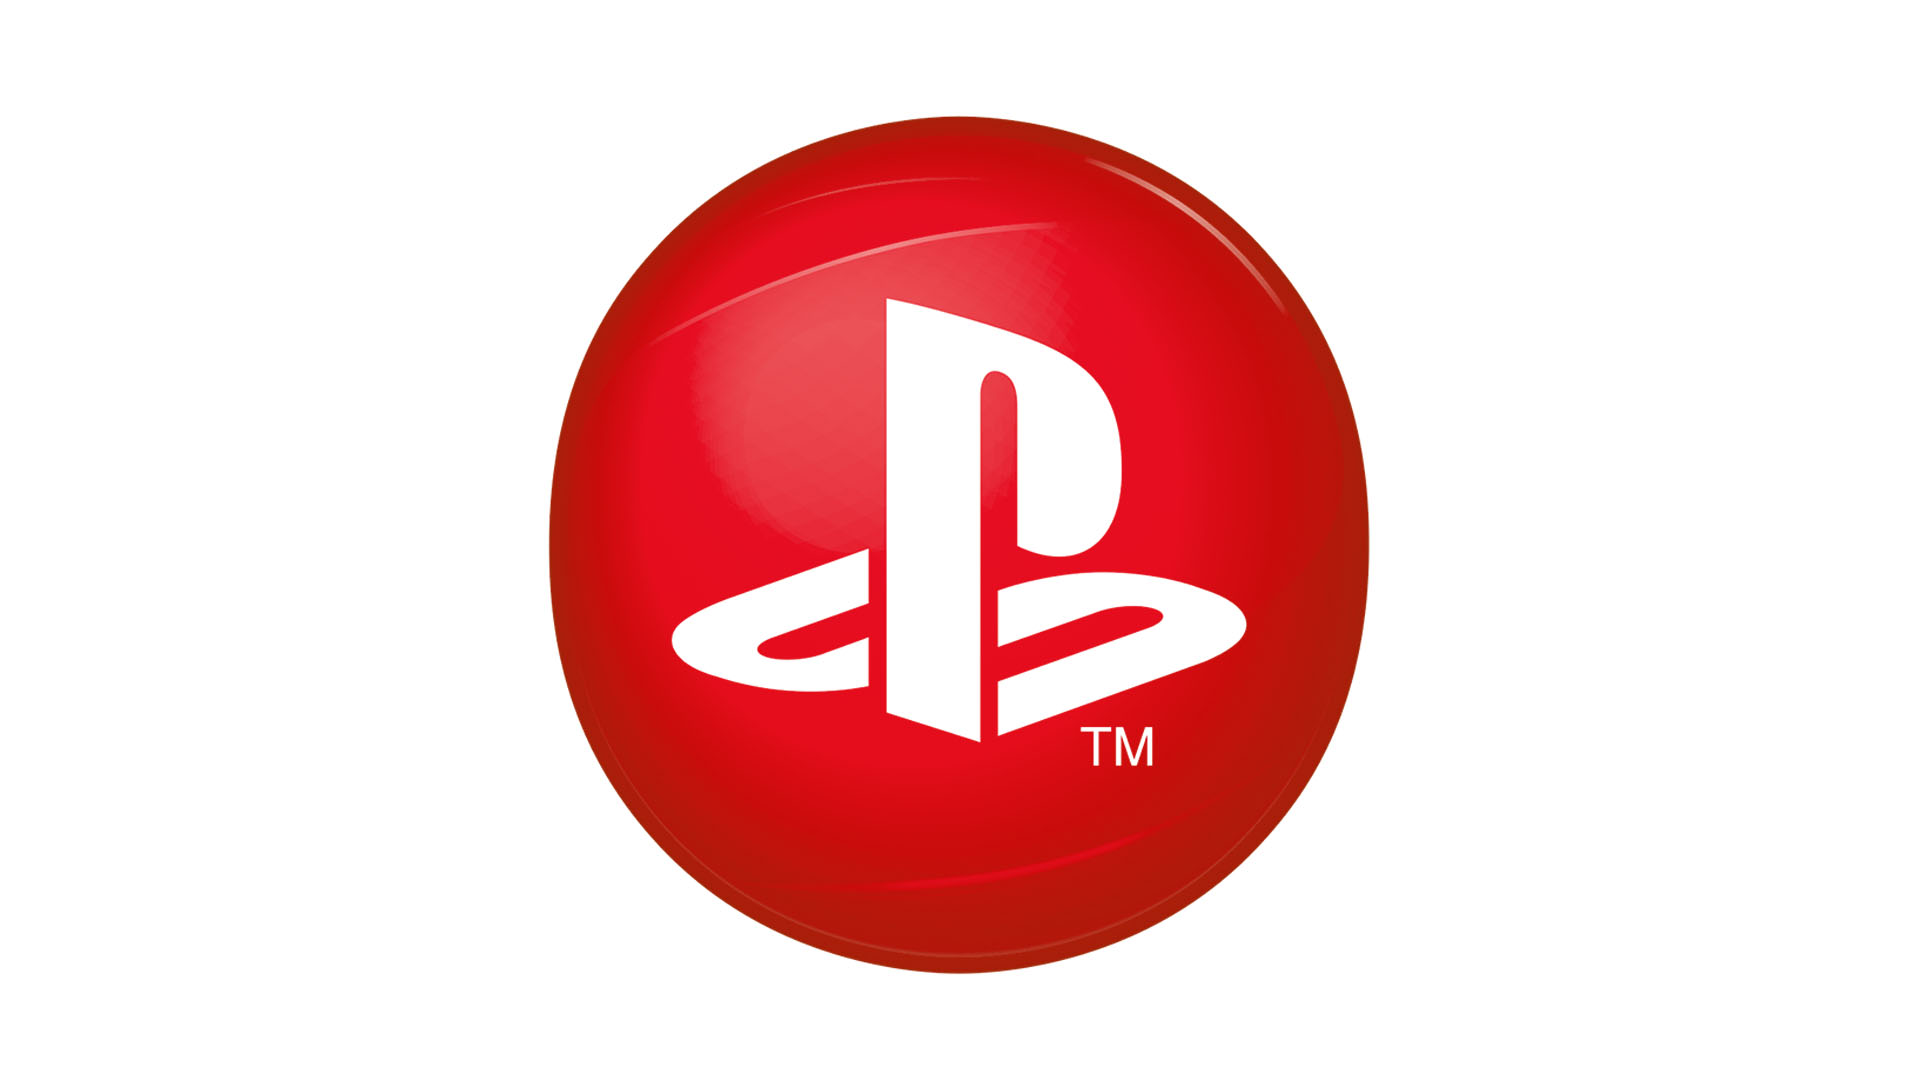 How To Use A Japanese PSN Account On PS Vita Without